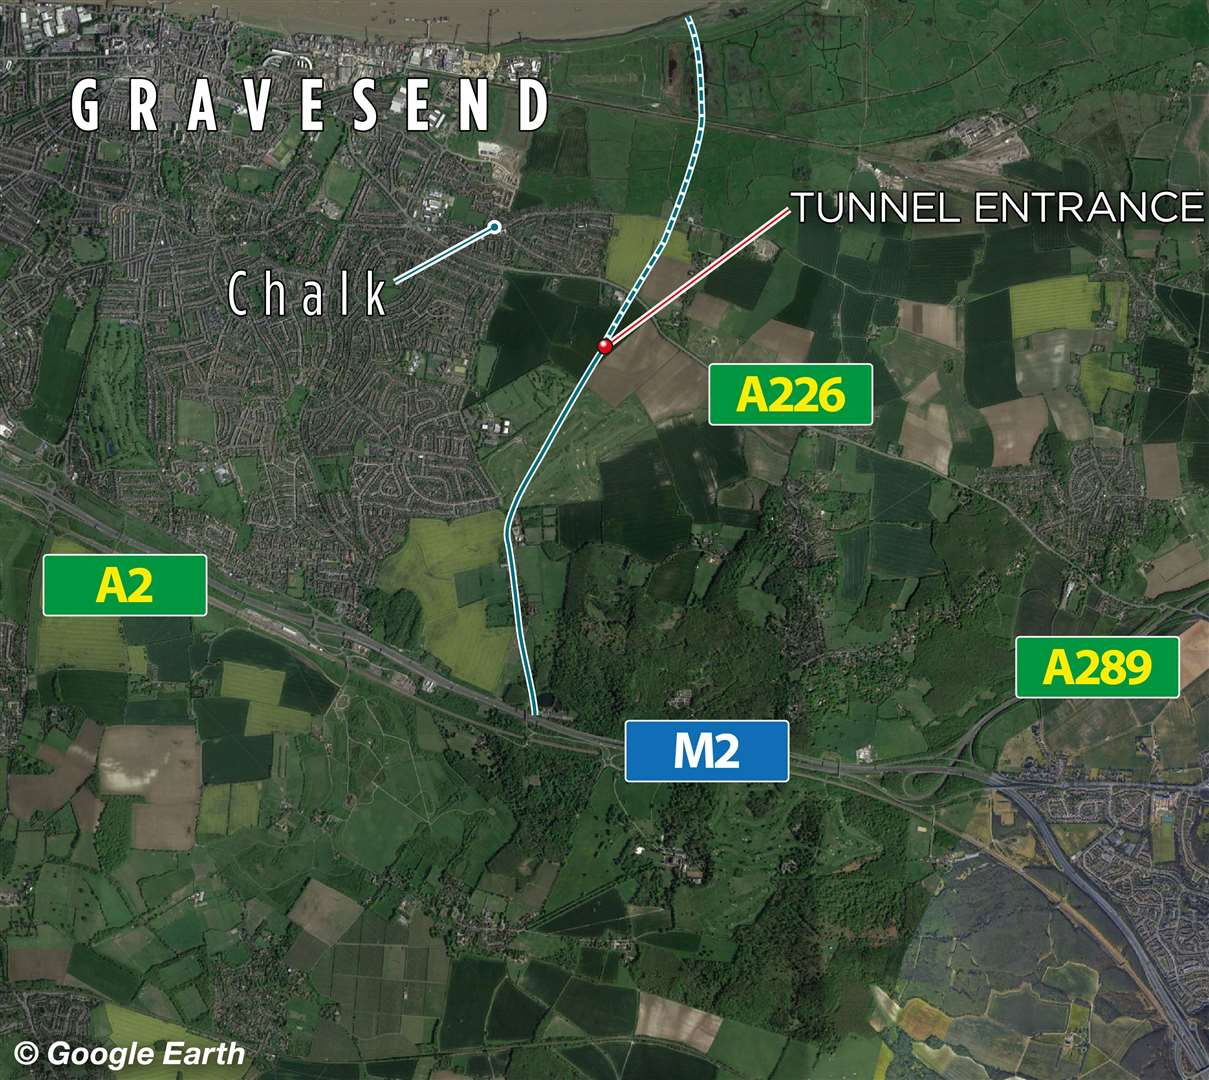 The updated planned route of the Lower Thames Crossing